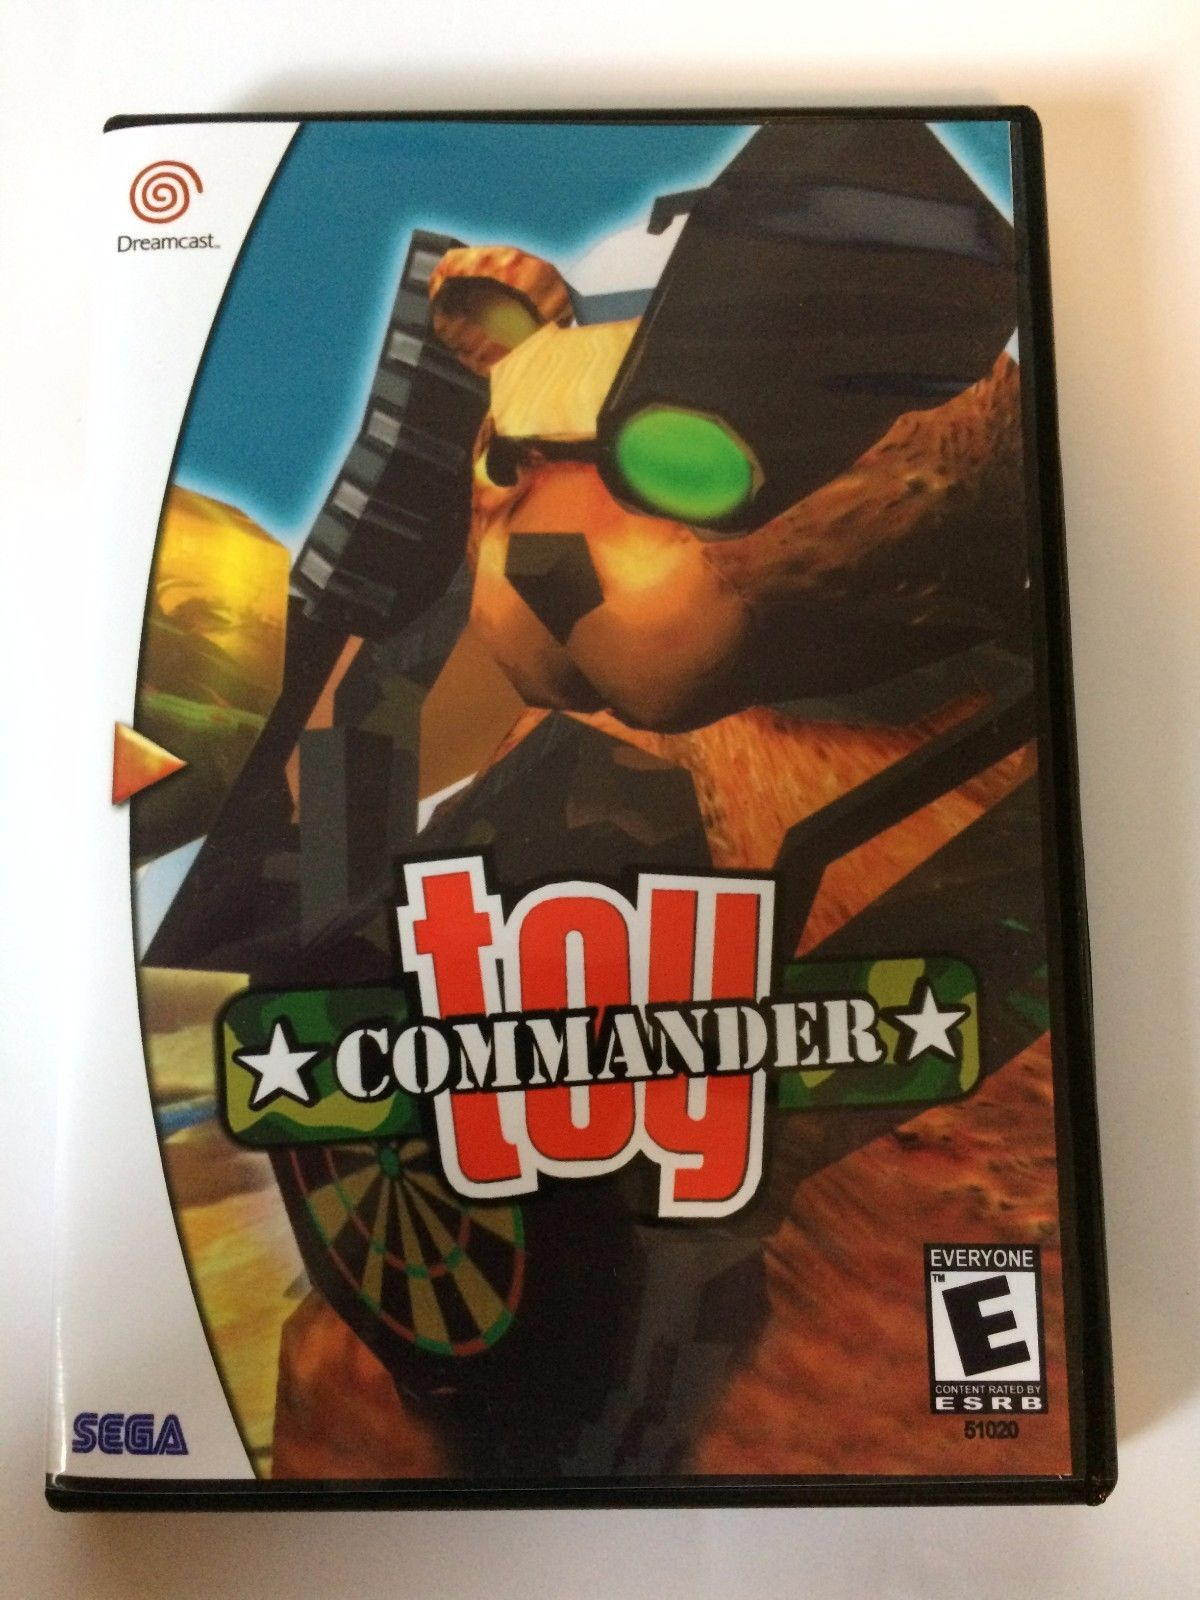 Toy Commander - Sega Dreamcast - Replacement Case - No Game